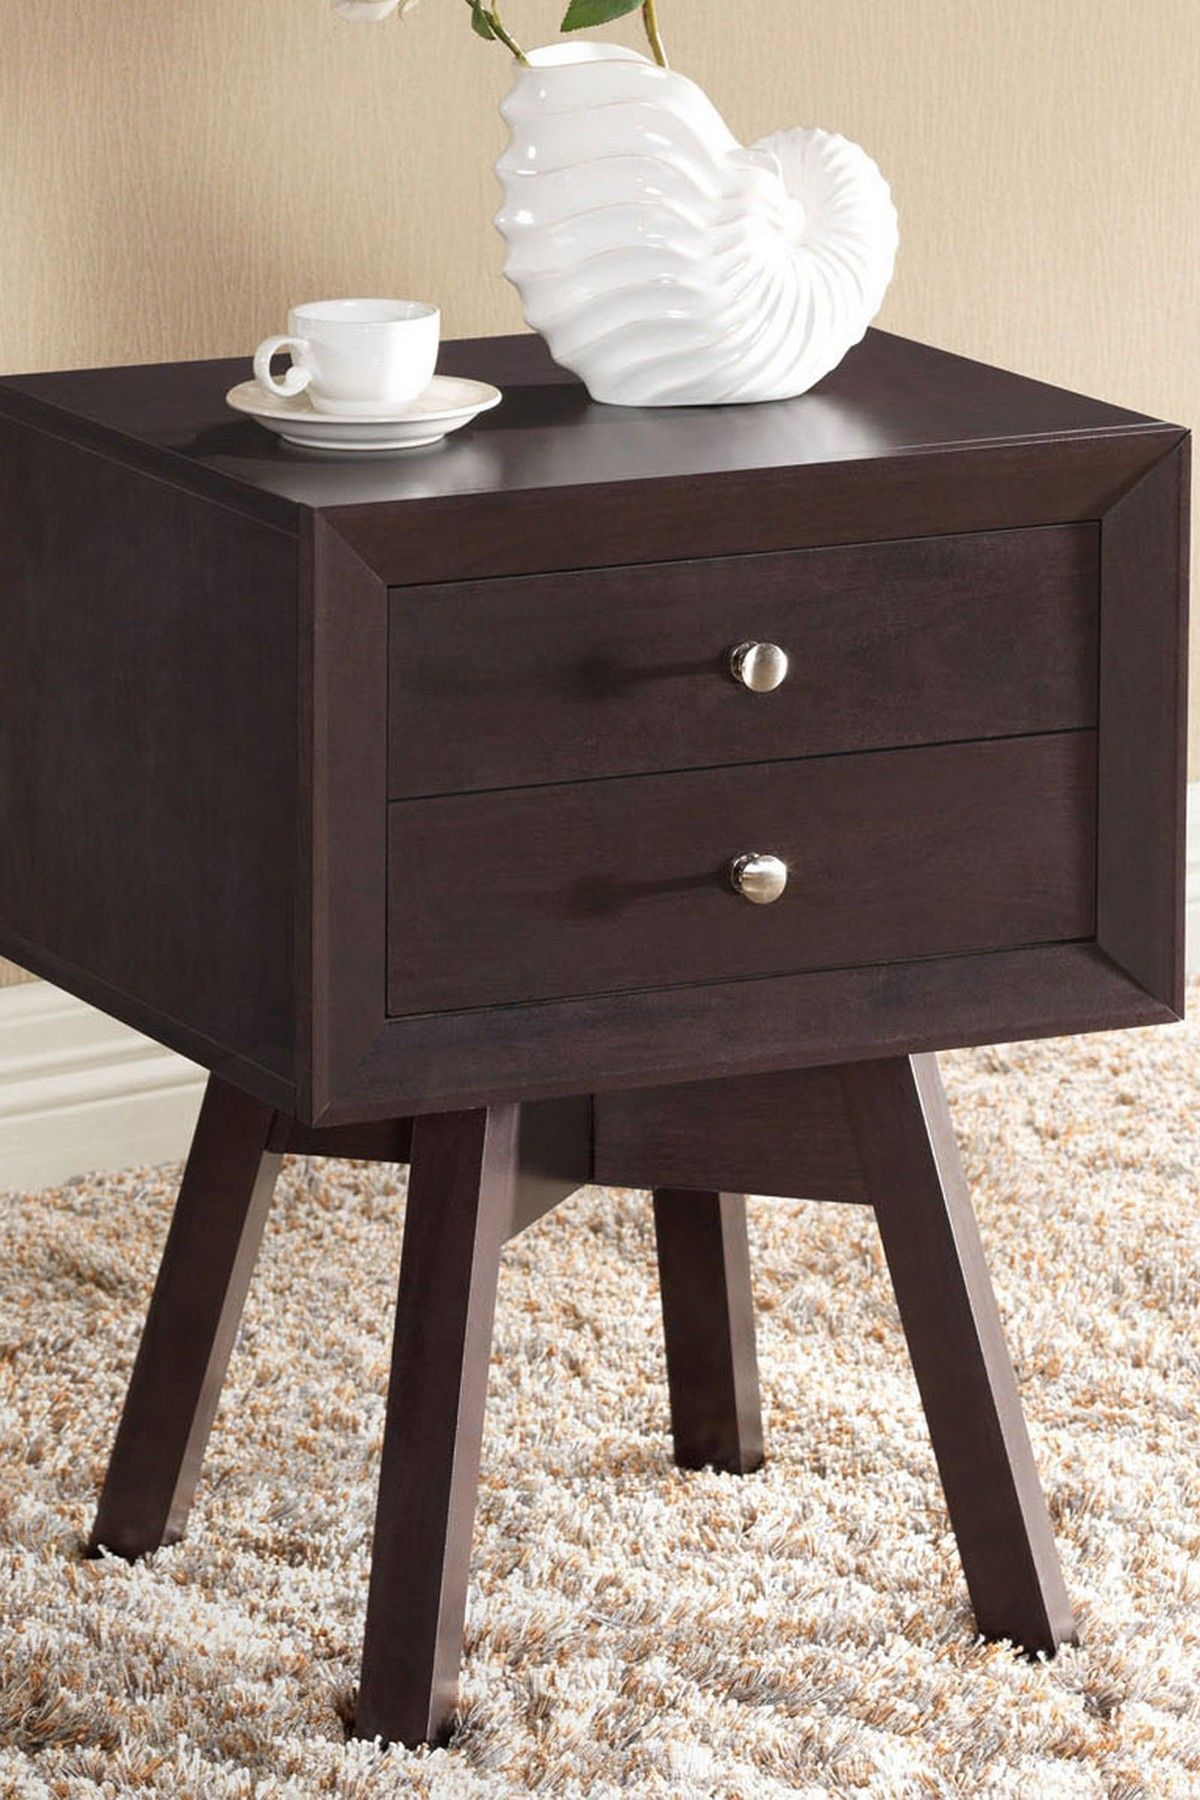 warwick dark brown modern accent table nightstand hautelook long thin side target bar stools large square marble coffee phone stand for desk entryway decor tablecloth inch round